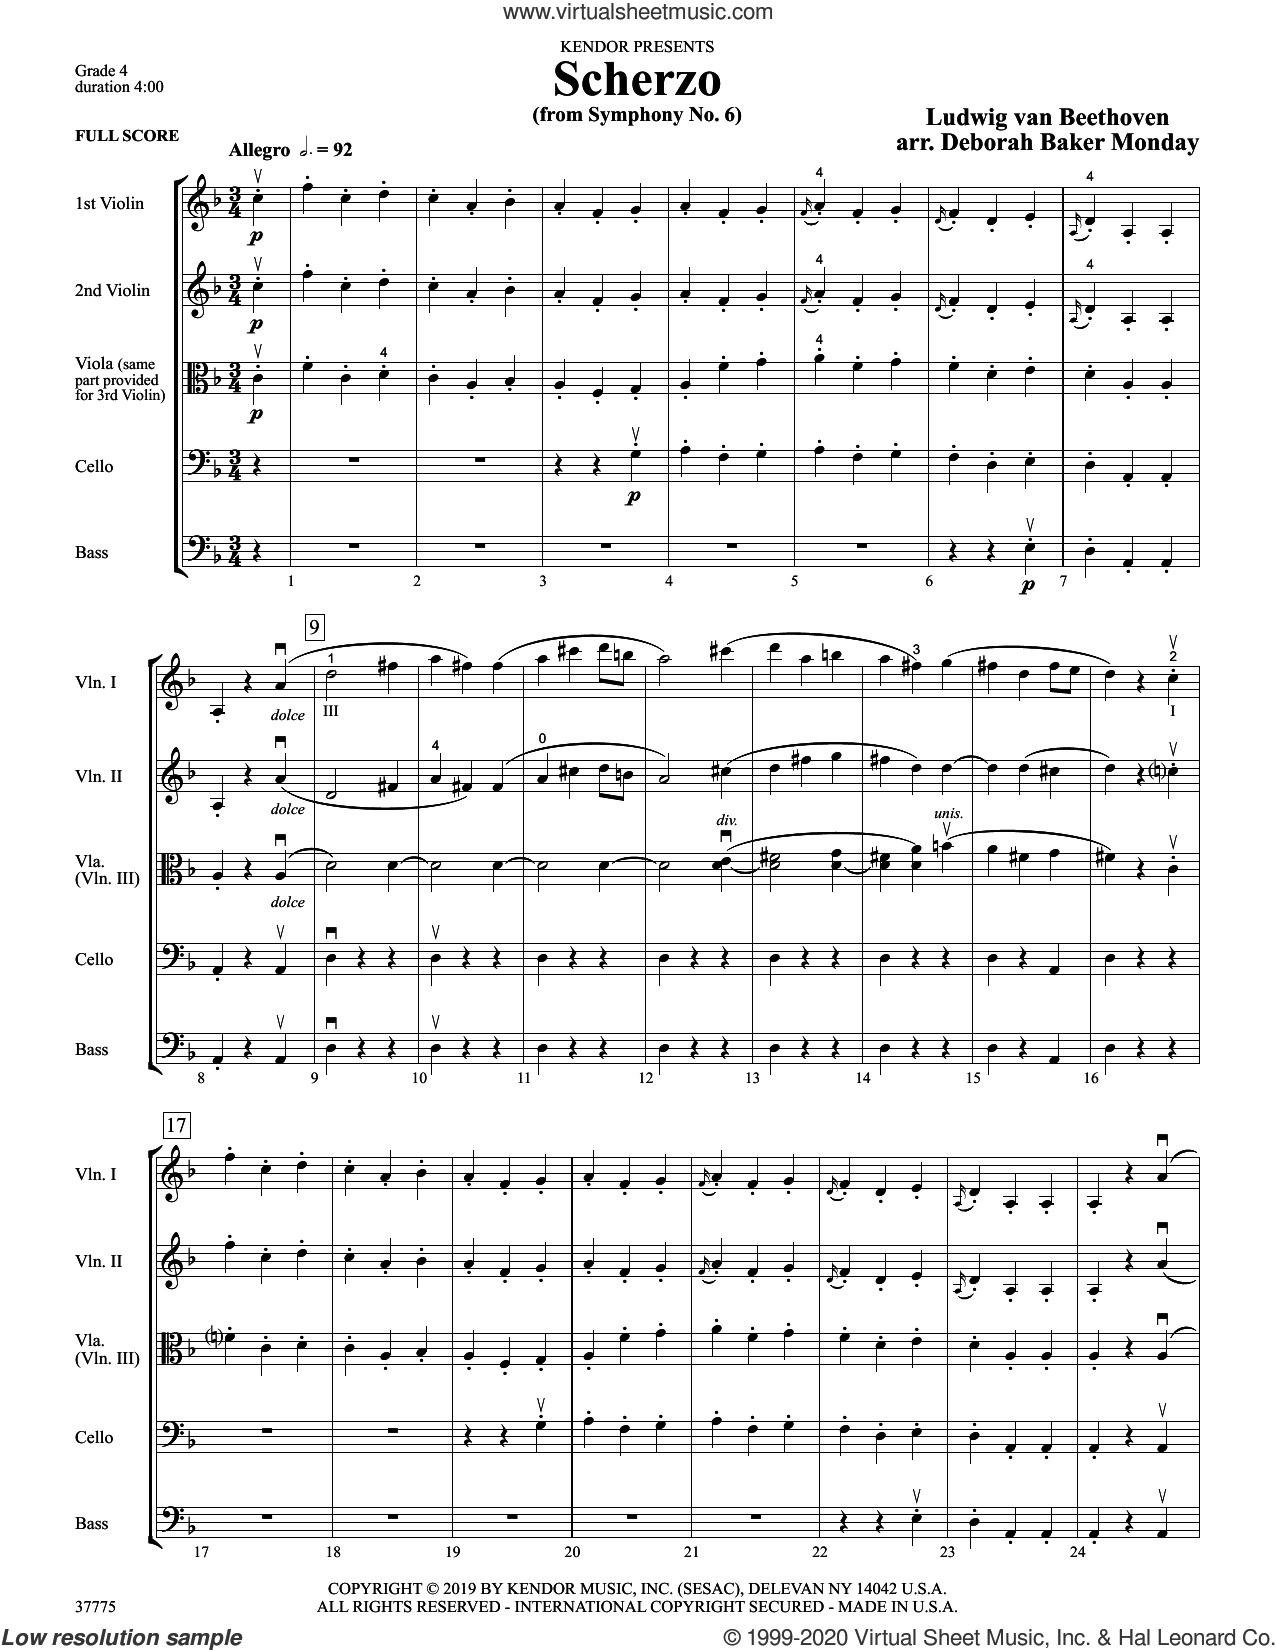 Scherzo (from Symphony No. 6) (arr. Deborah Baker Monday) (COMPLETE) sheet music for orchestra by Ludwig van Beethoven and Deborah Baker Monday, classical score, intermediate skill level